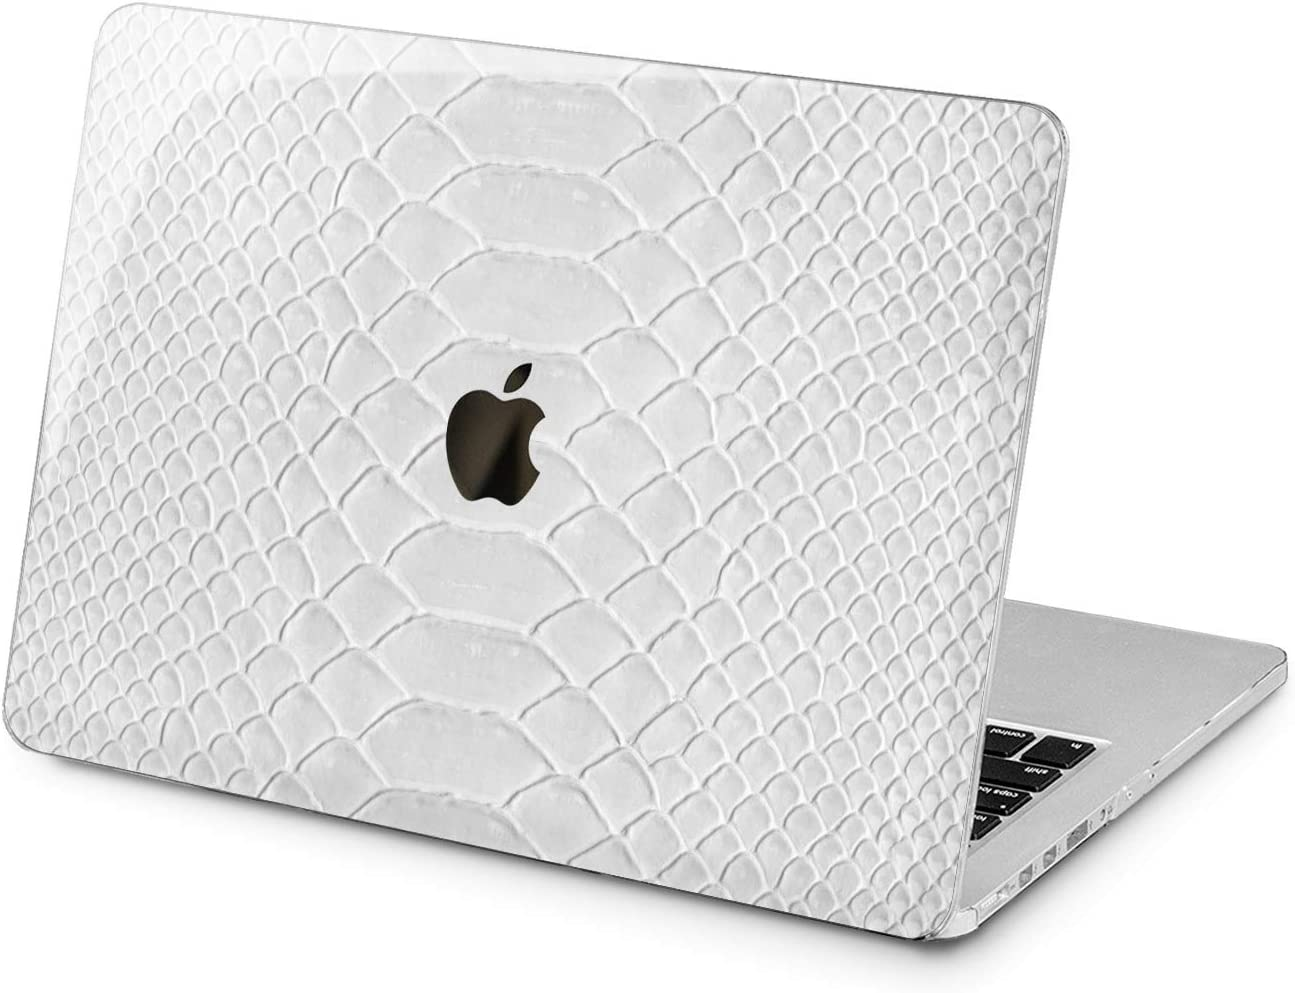 Lex Altern Hard Case for Apple MacBook Pro 15 Air 13 inch Mac Retina 12 11 2020 2019 2018 2017 2016 Royal Laptop Snake Leather Grain Cover Girly Skin Design Women Texture White Plastic Touch Bar